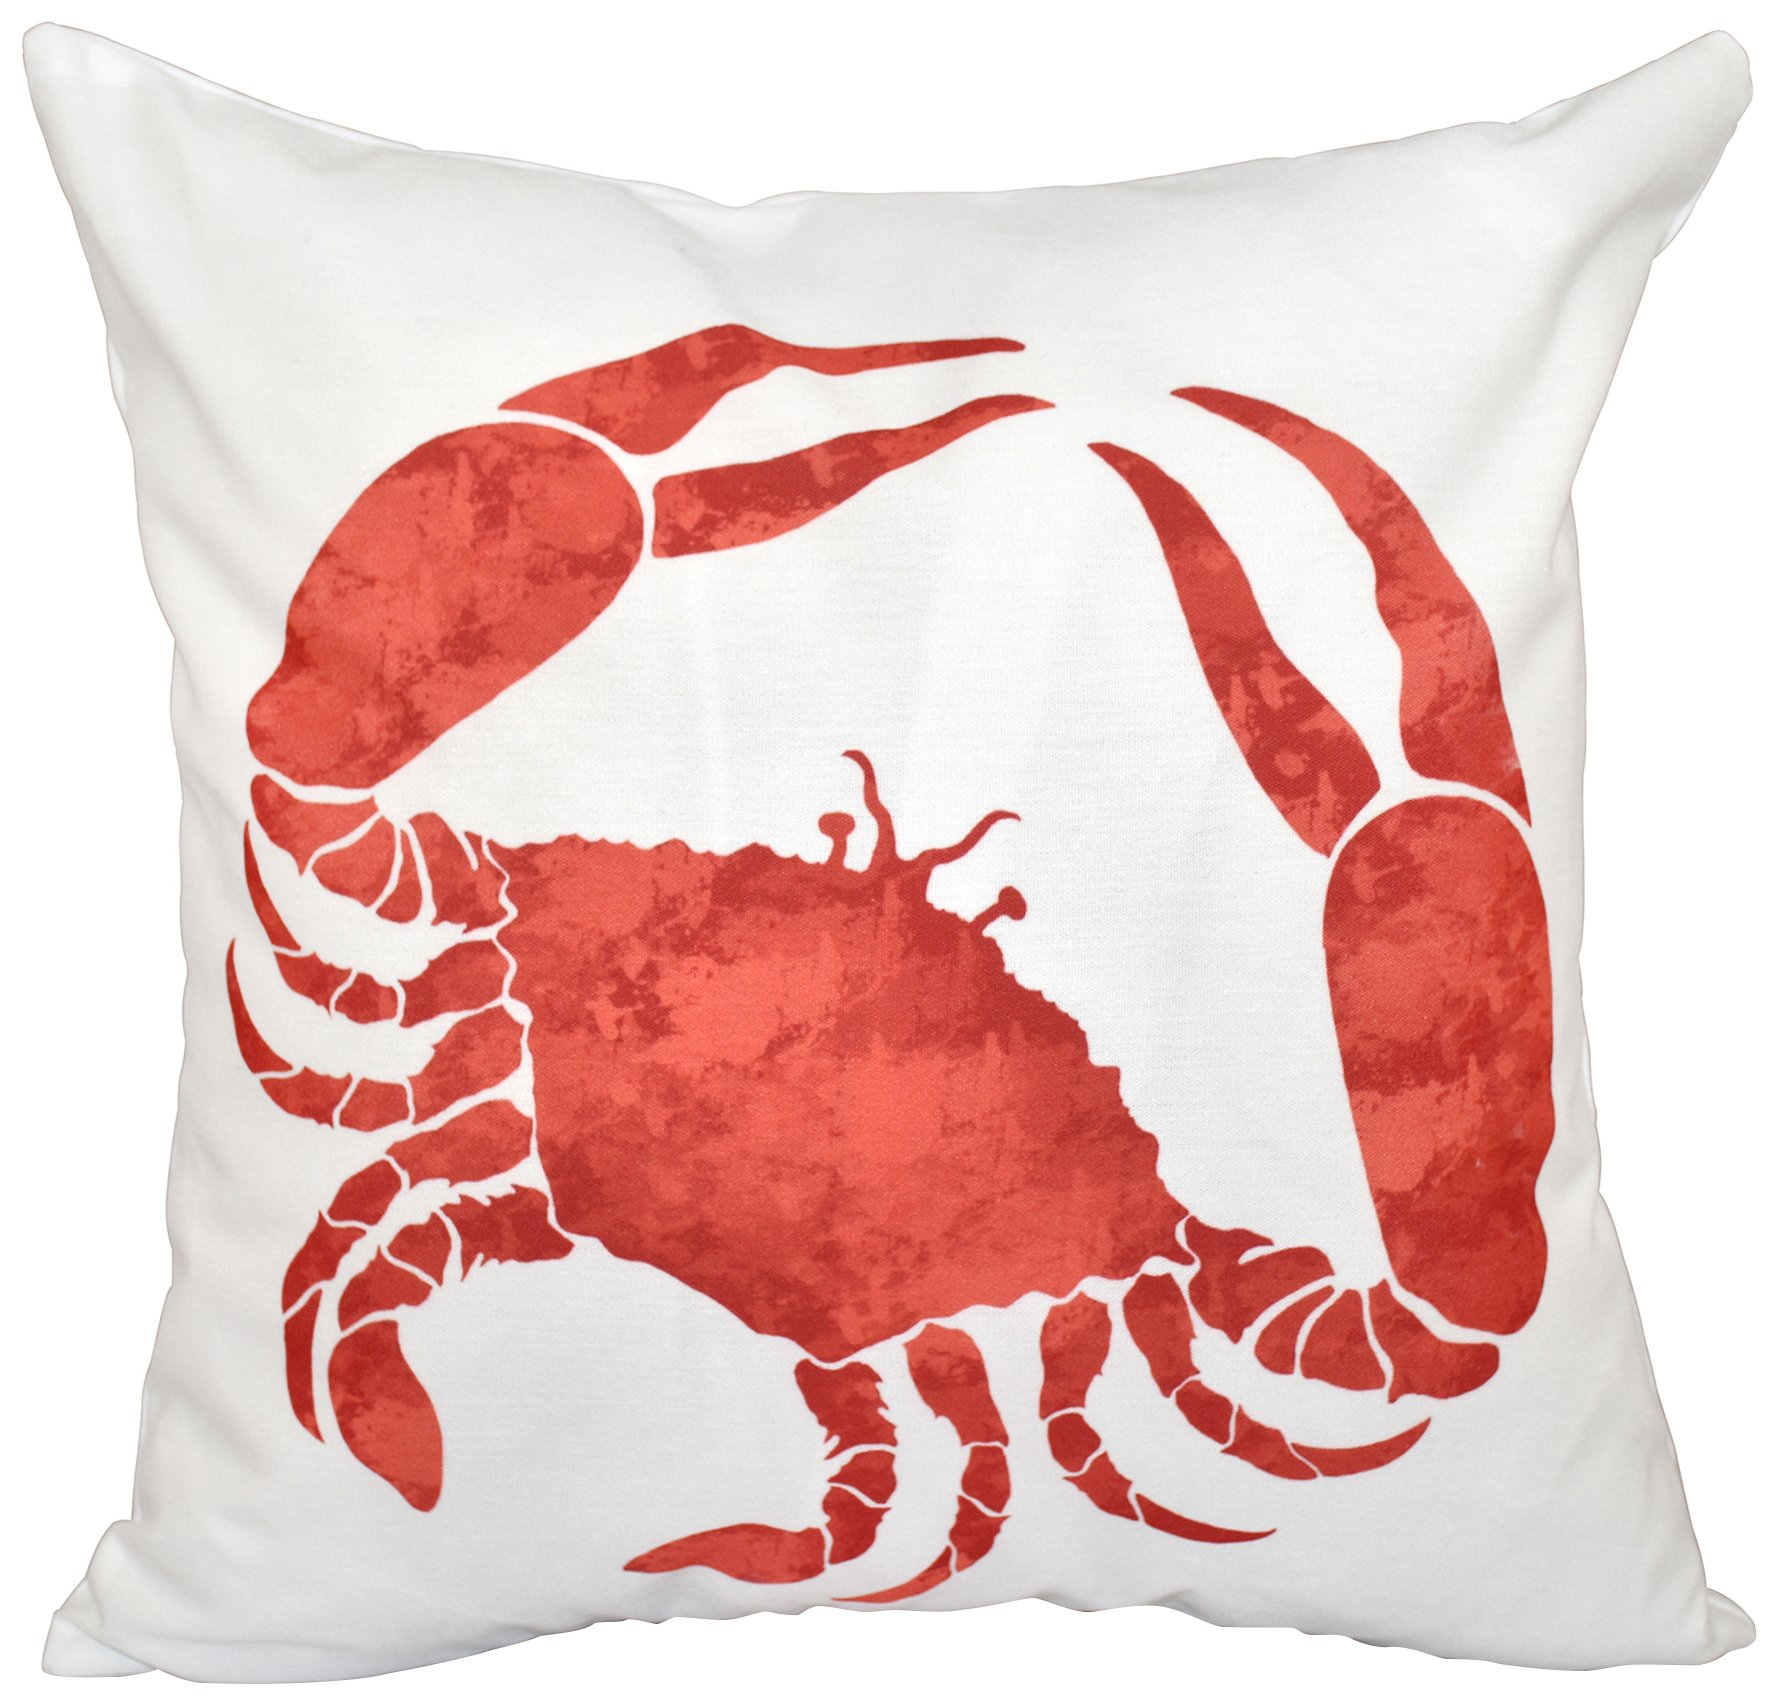 E by design O5PAN467OR15-20 20 x 20 Crab Animal Print Red/Orange Outdoor Pillow